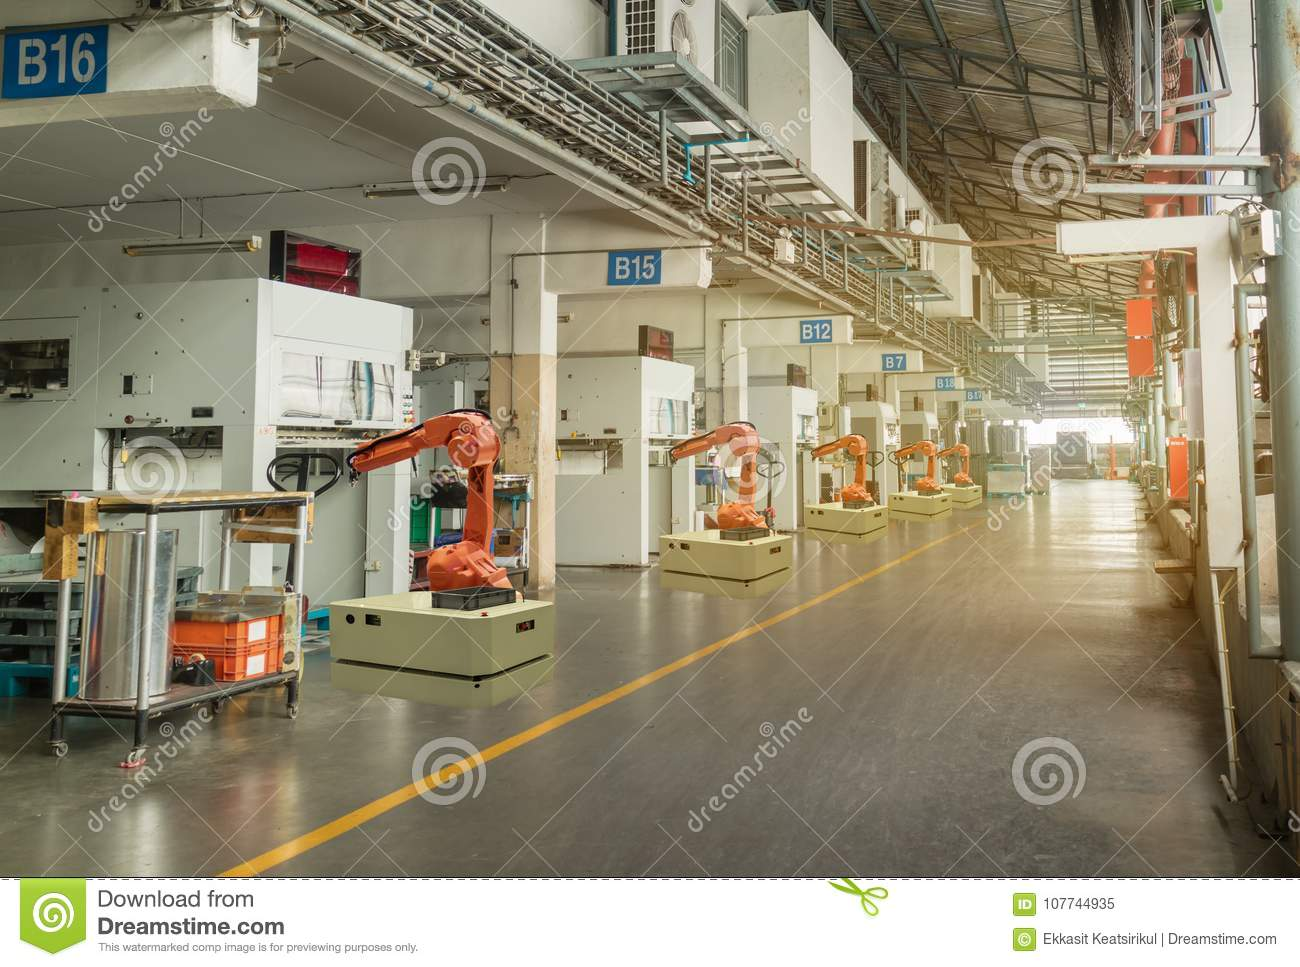 Iot smart industry 4.0 concept. Automation robotic arm working in operation machine zone in factory, Robot using in industrial man